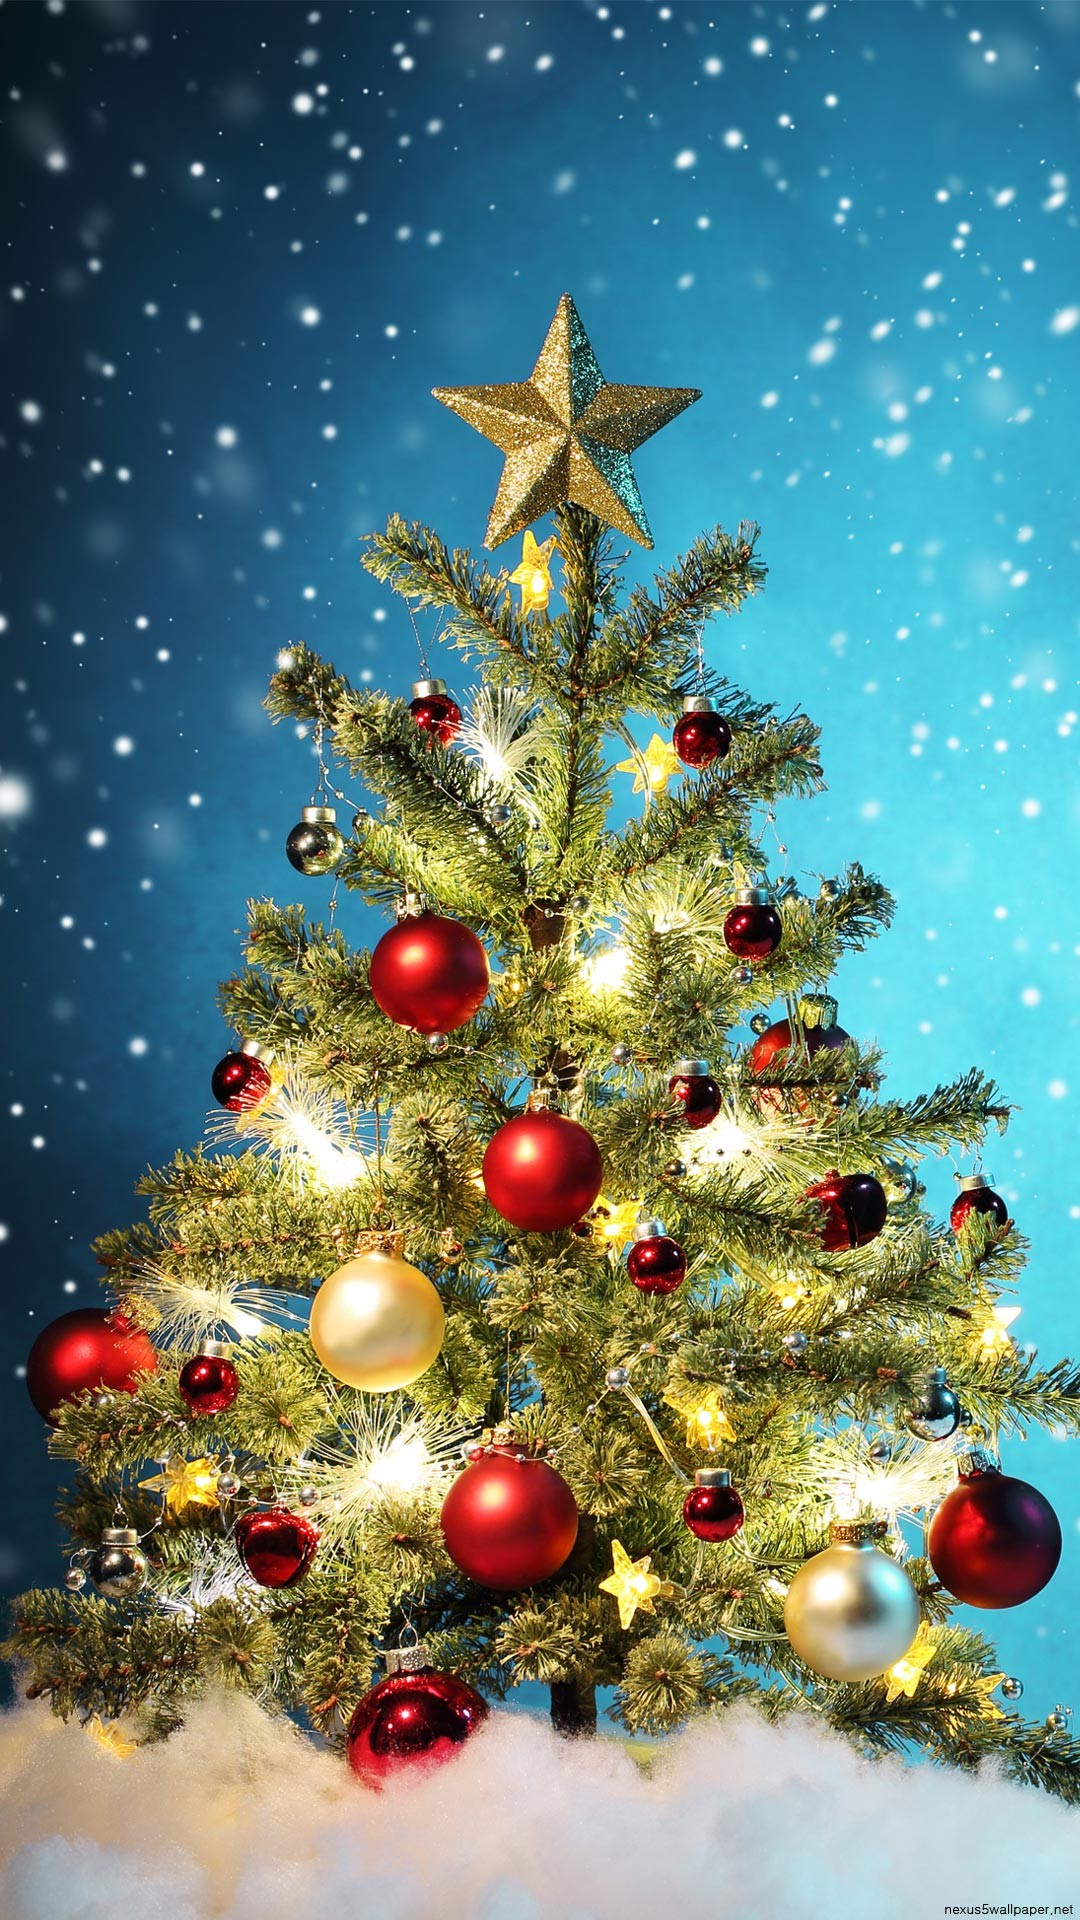 Christmas phone wallpaper download free beautiful wallpapers for merry voltagebd Image collections